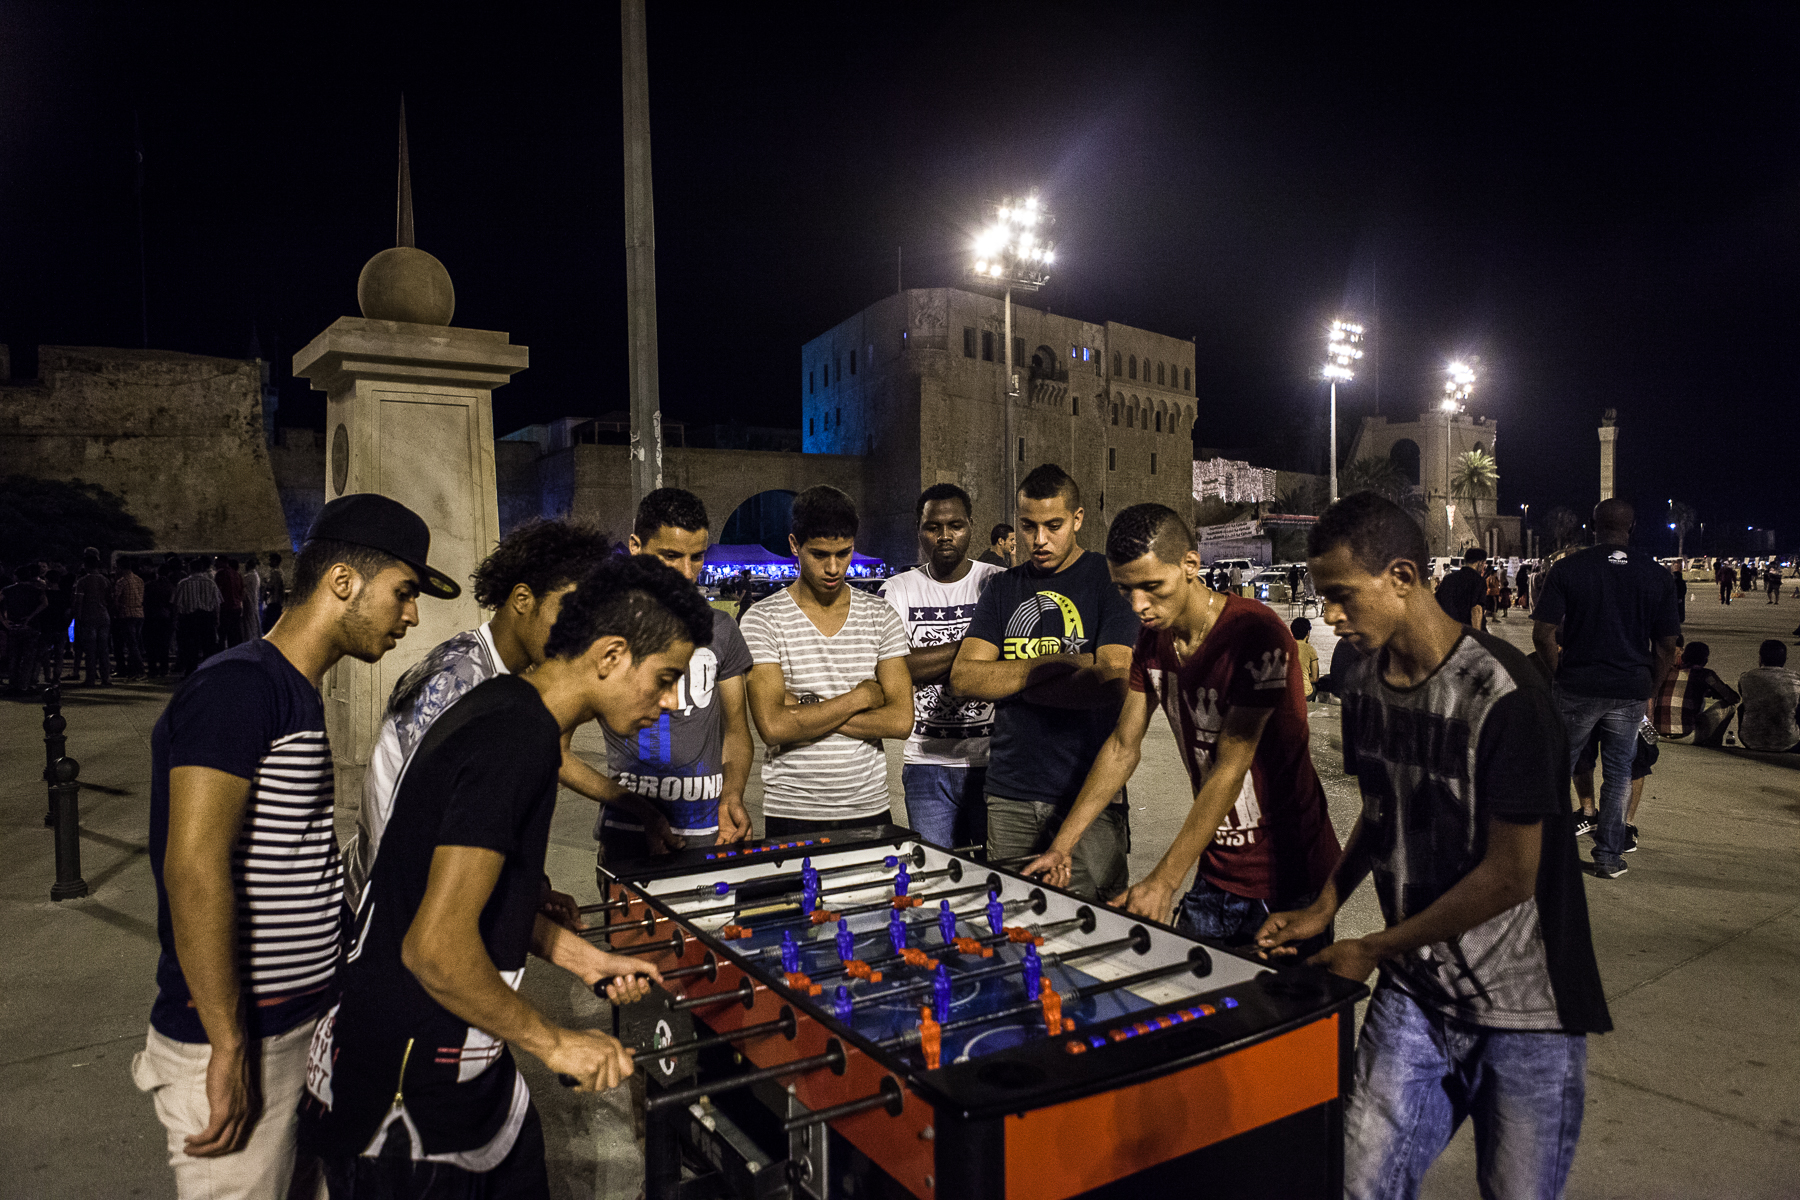 Tripoli, le 9 Juillet 2015. Peu après la rupture du jeûne du ramadan, familles et groupes de jeunes  se retrouvent place des martyrs de Tripoli dans une ambiance bon enfant.   Tripoli, July 9, 2015. Soon after breaking the fast of Ramadan, families and youth groups meet at Martyrs Square in Tripoli in a friendly atmosphere.